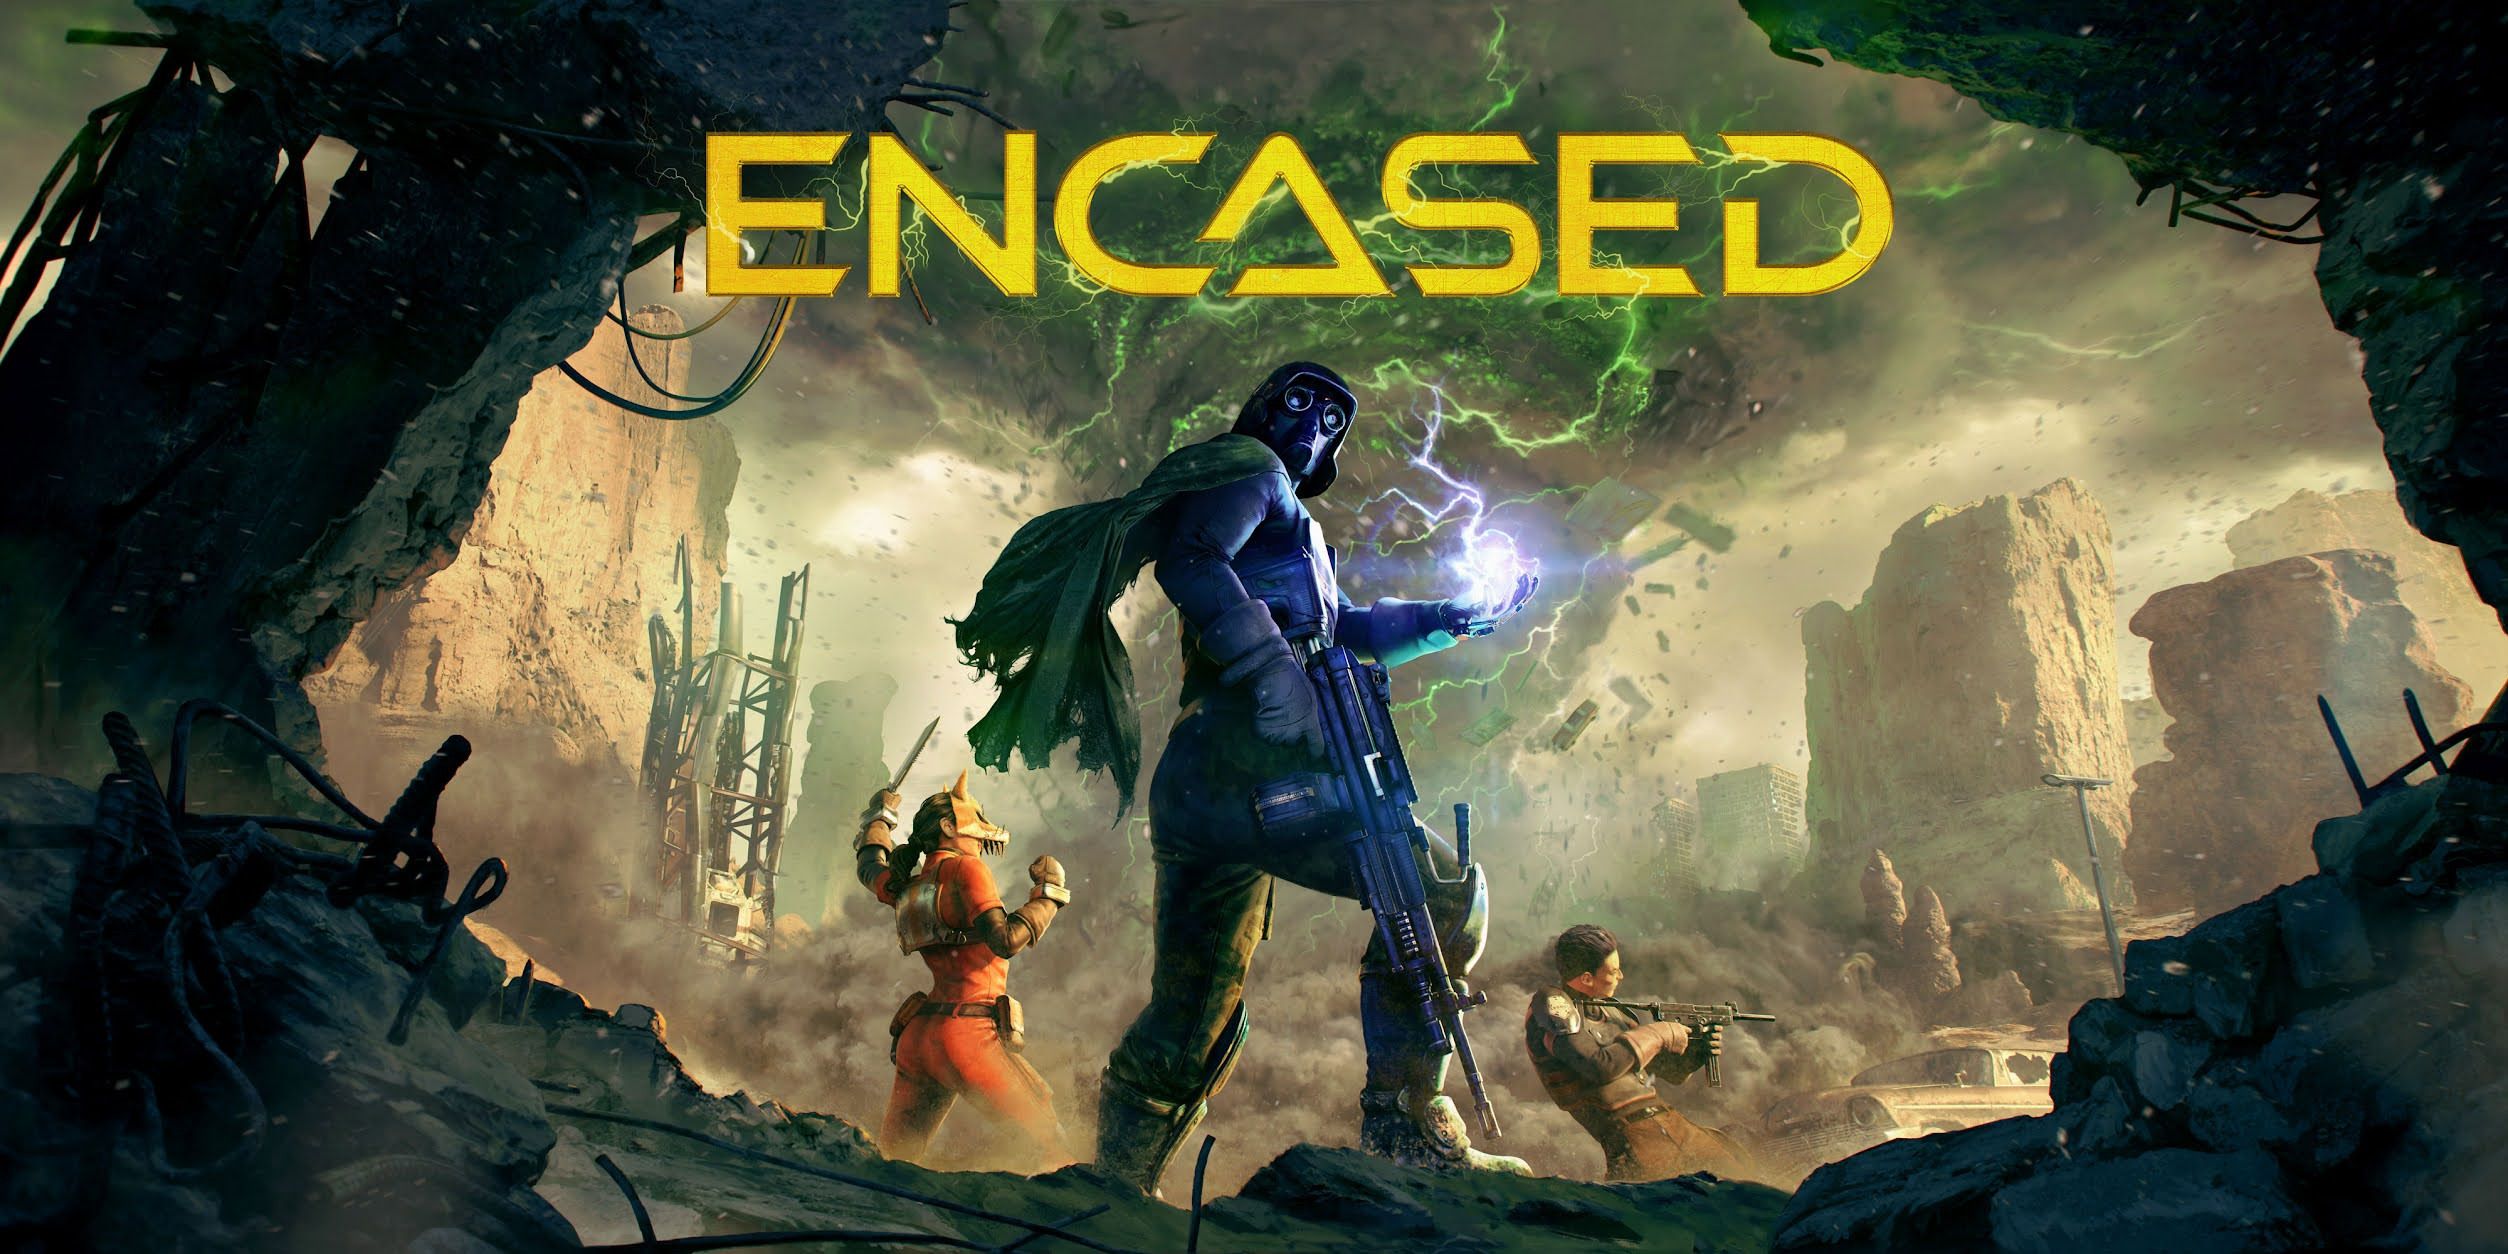 How to find all companions in Encased